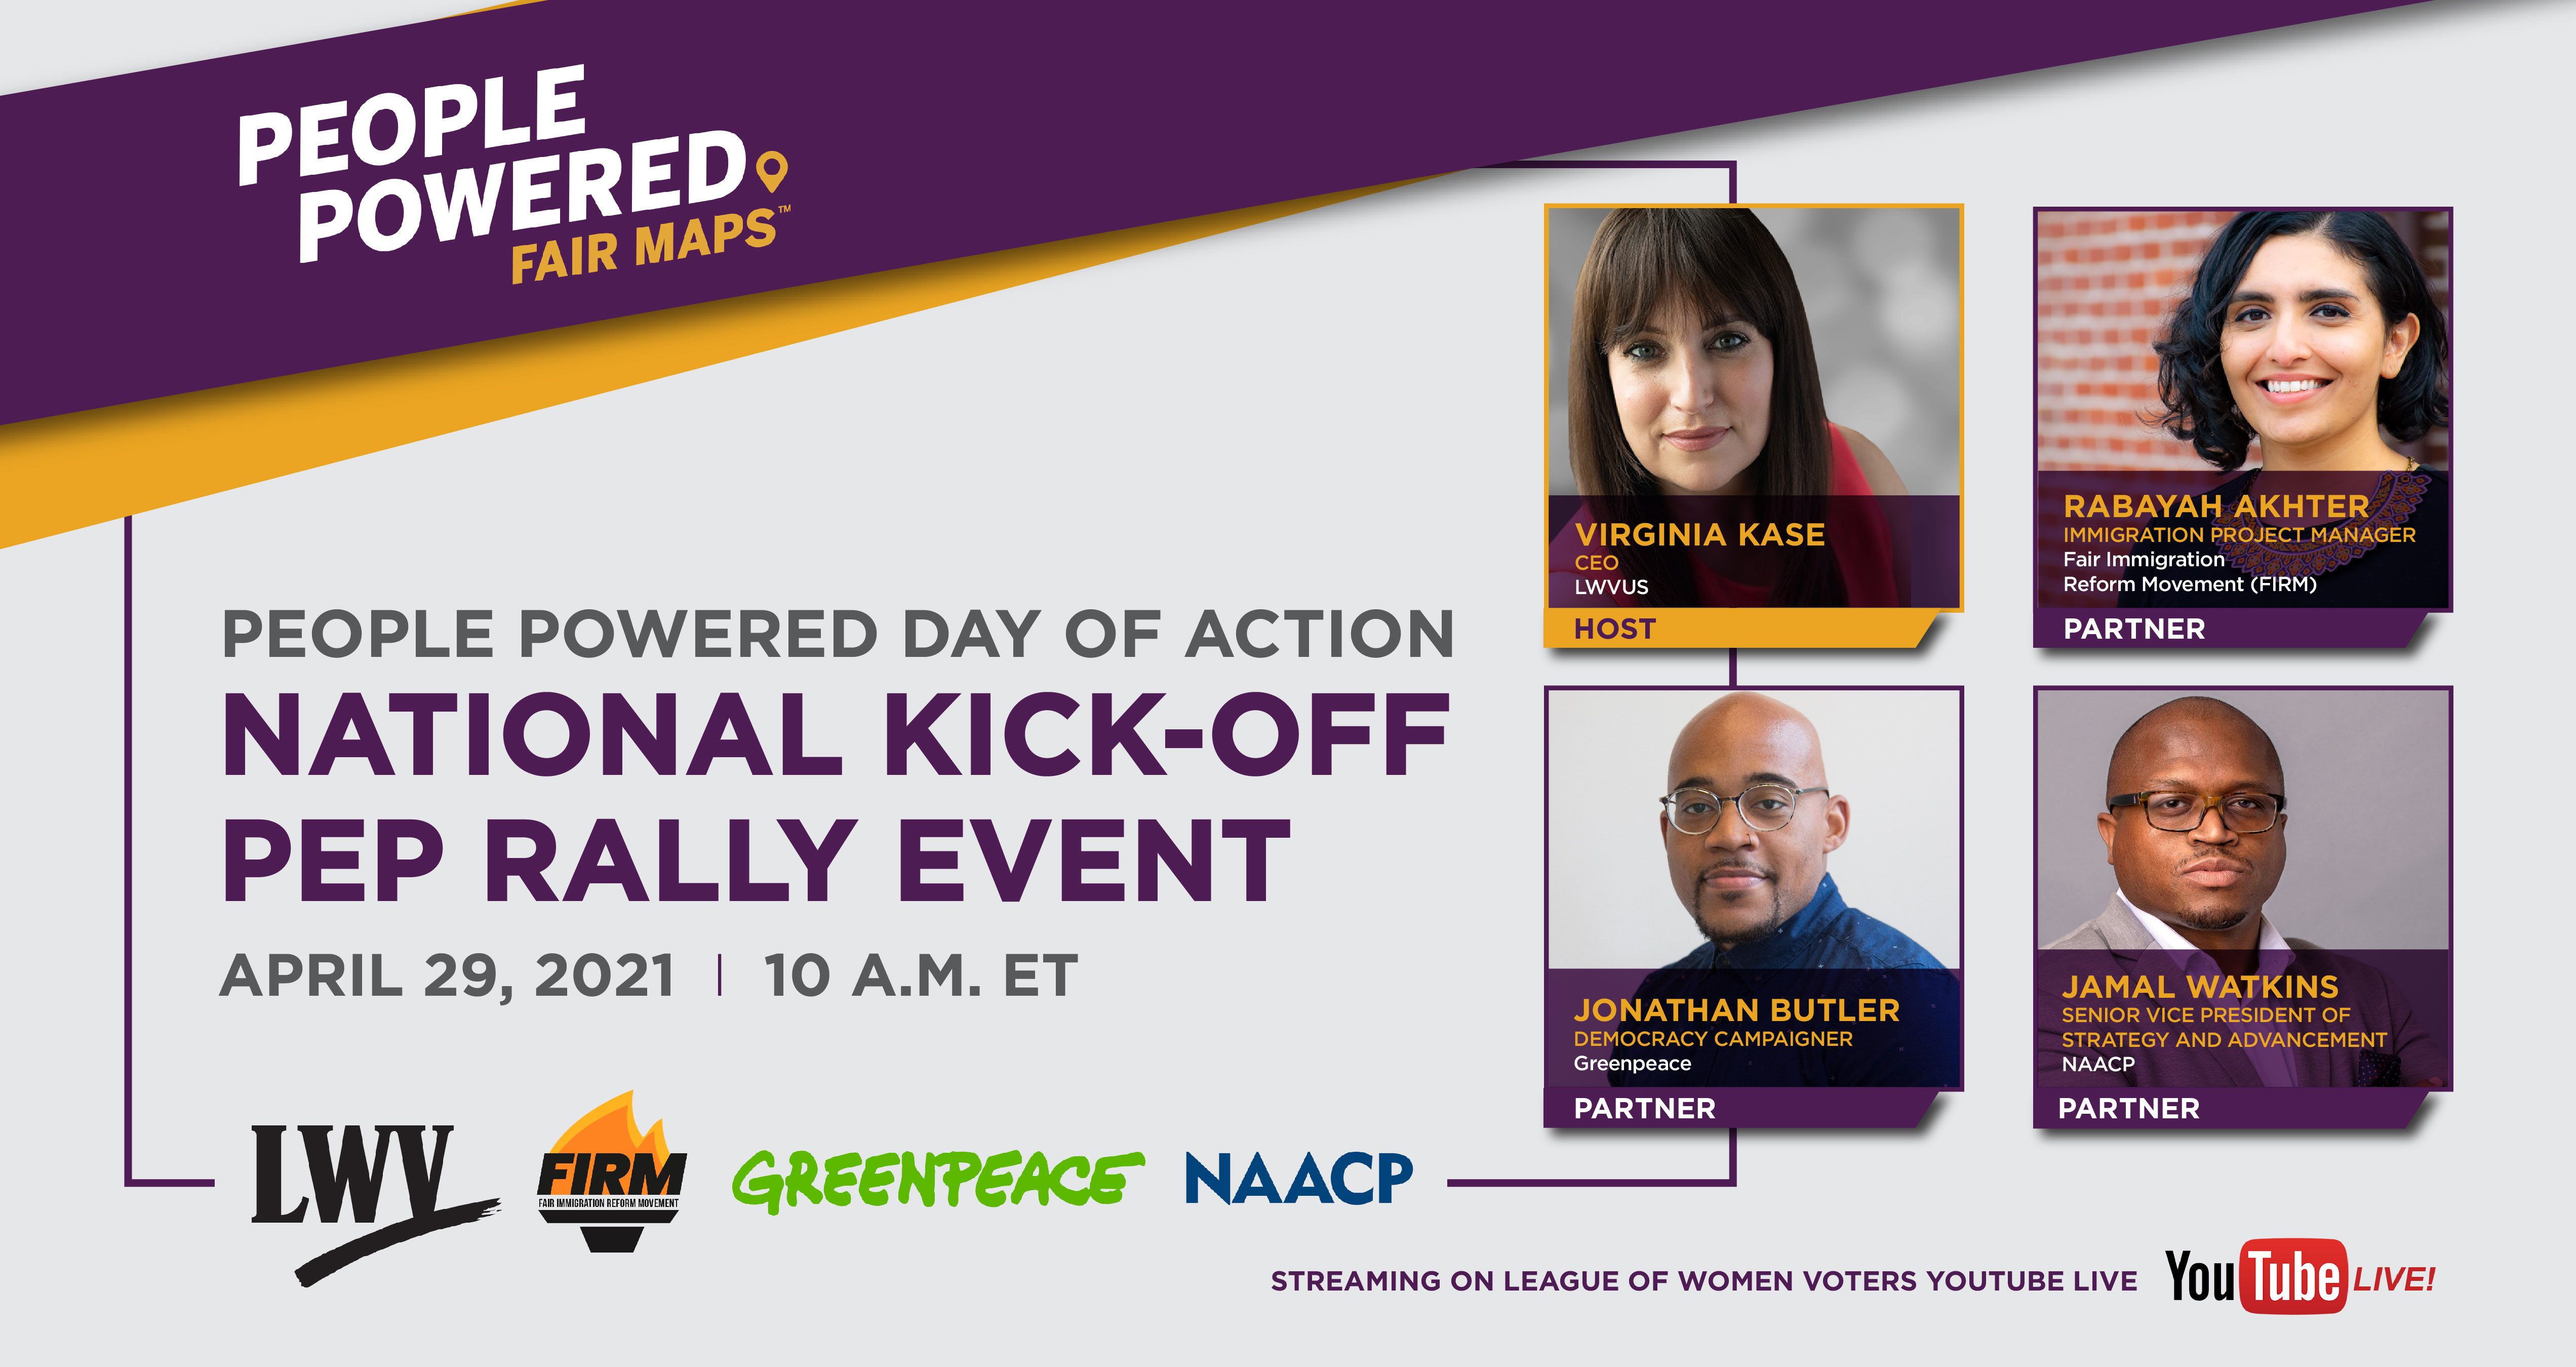 People Powered Fair Maps logo; text: People Powered Day of Action, National Kick-off Pep Rally Event, April 29, 2021, 10am ET; LWV, FIRM, Greenpeace, NAACP; Virginia Kase, CEO of LWVUS, Rabayah Akhter, Immigration project manager of Fair Immigration Reform Movement; Jonathan Butler, democracy campaigner of Greenpeace; Jamal Watkins, senior vice president of strategy and advancement for NAACP; Streaming on League of Women Voters Youtube live